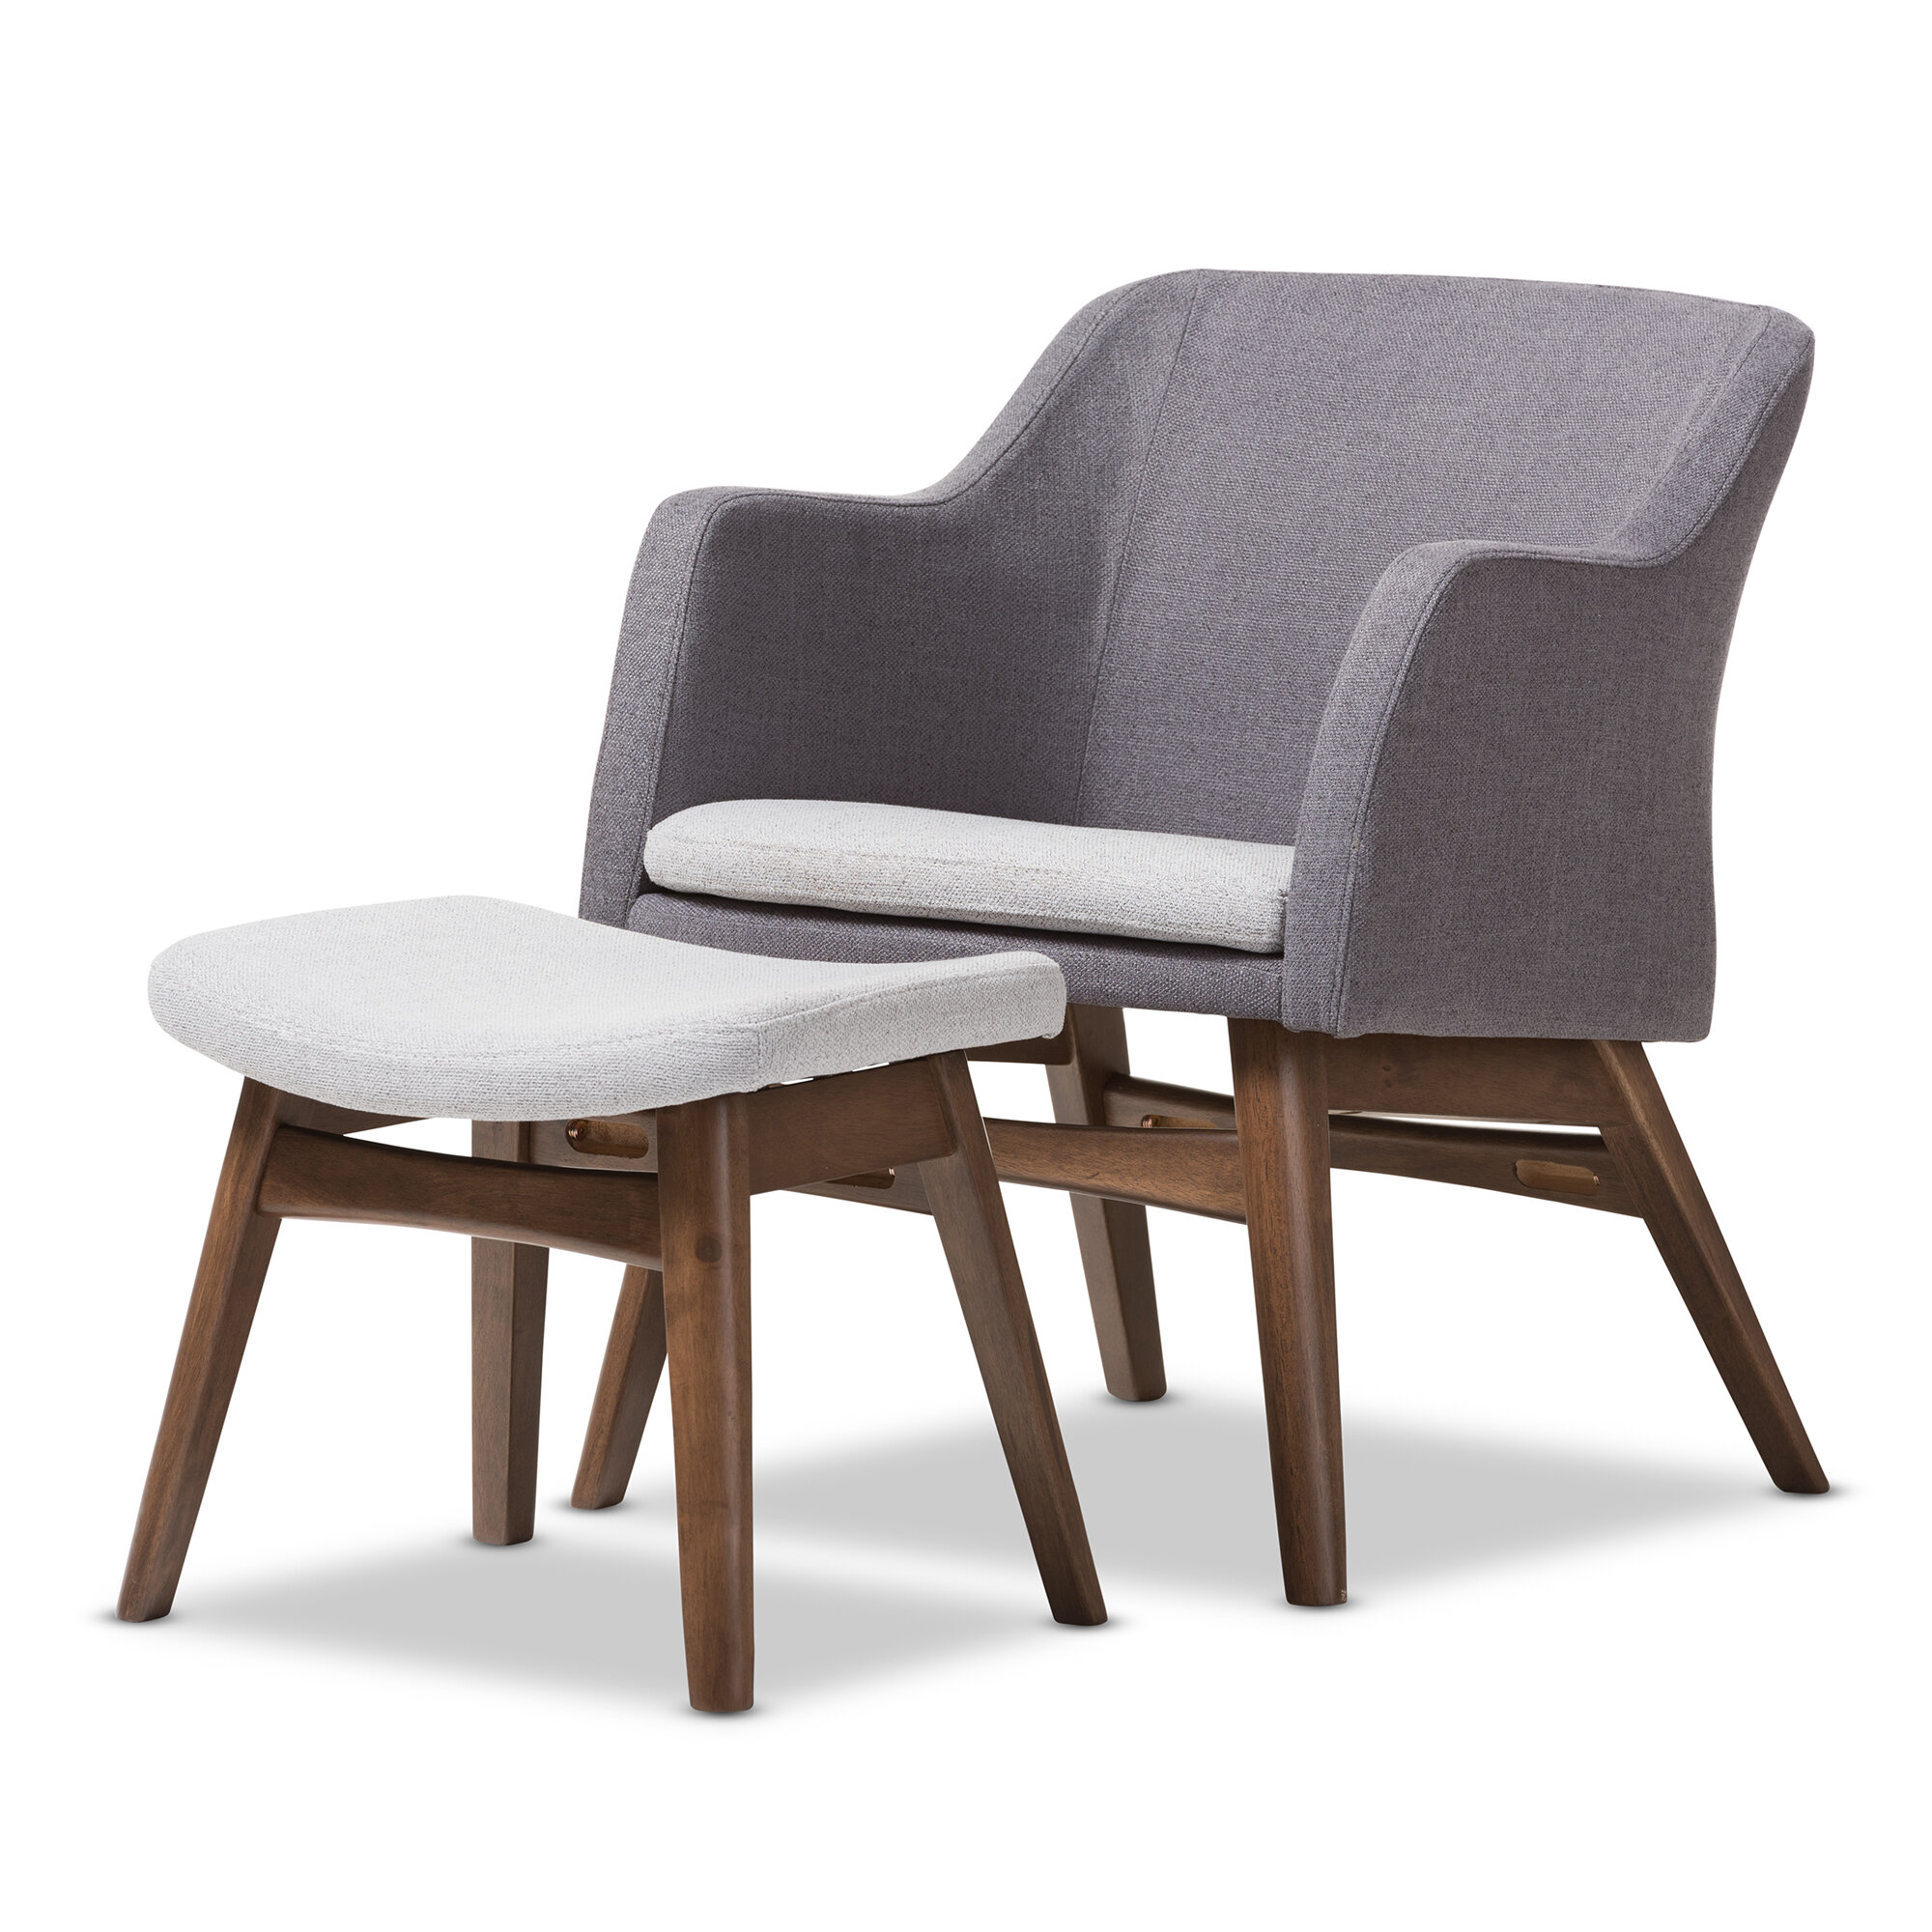 Wholesale Interiors Victoria Mid-Century Modern Lounge Chair and Ottoman u0026 Reviews | Wayfair  sc 1 st  Wayfair & Wholesale Interiors Victoria Mid-Century Modern Lounge Chair and ...